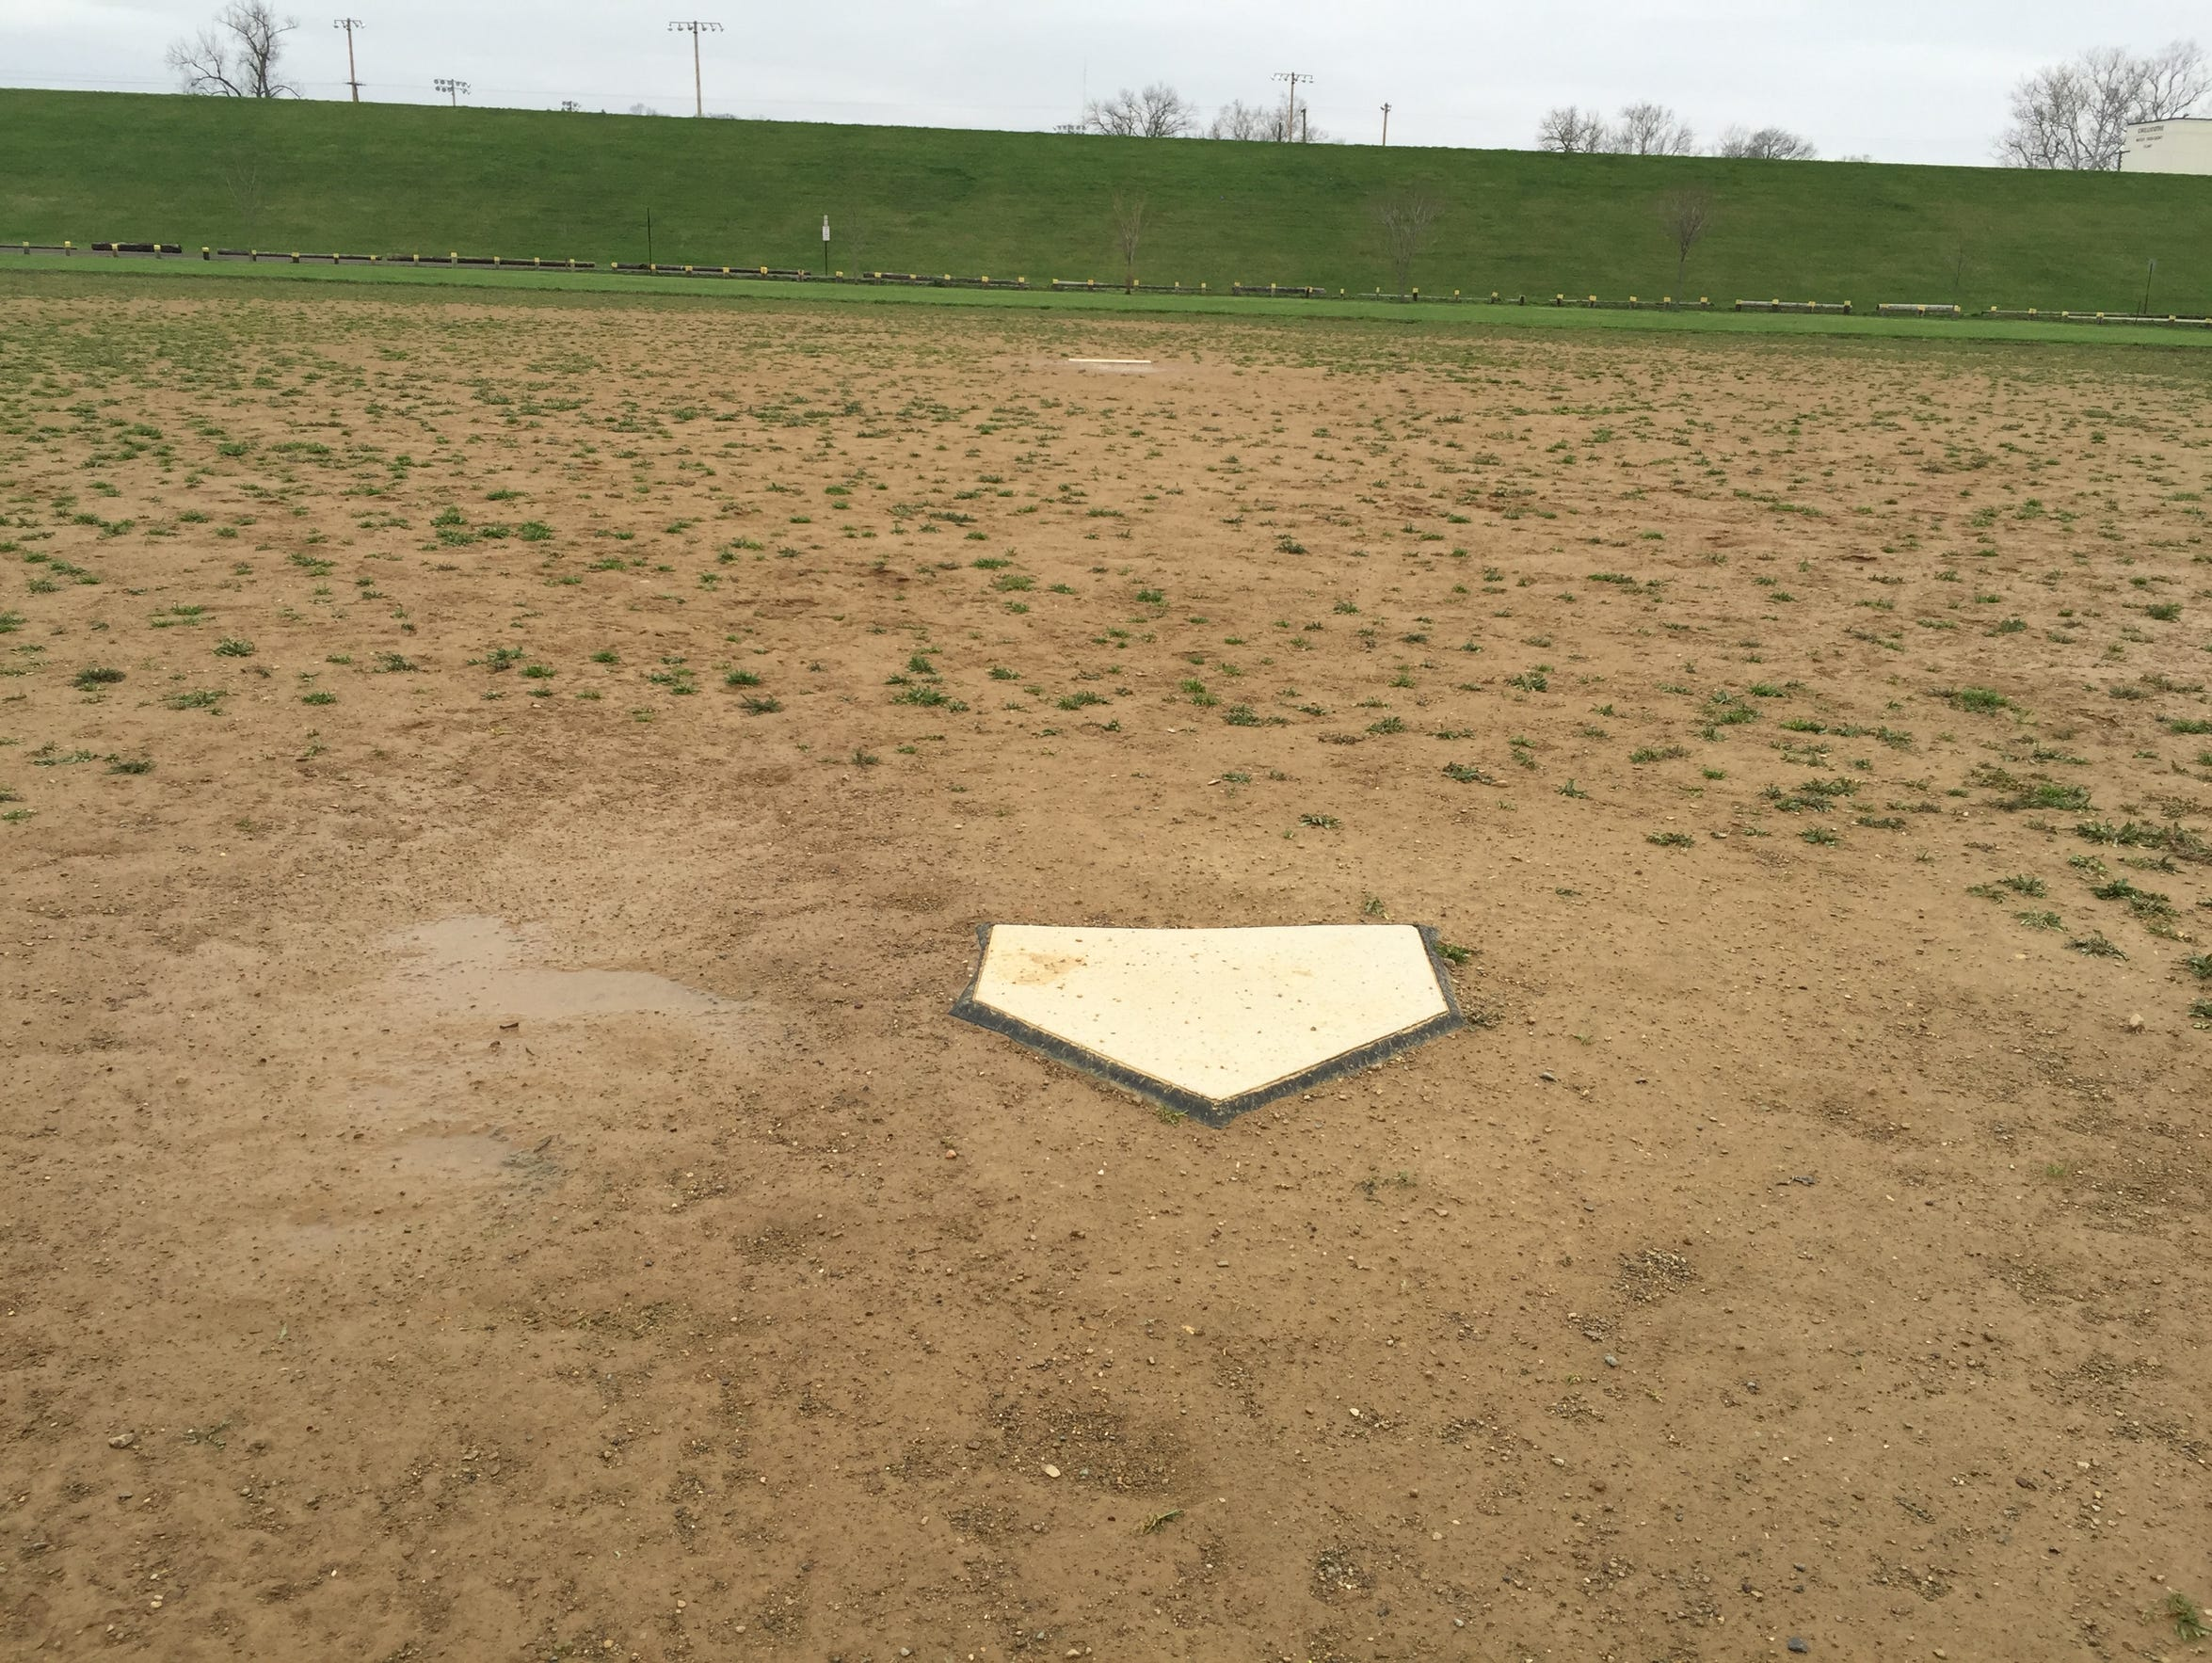 The conditions of Field G in the Yoctangee Park Annex